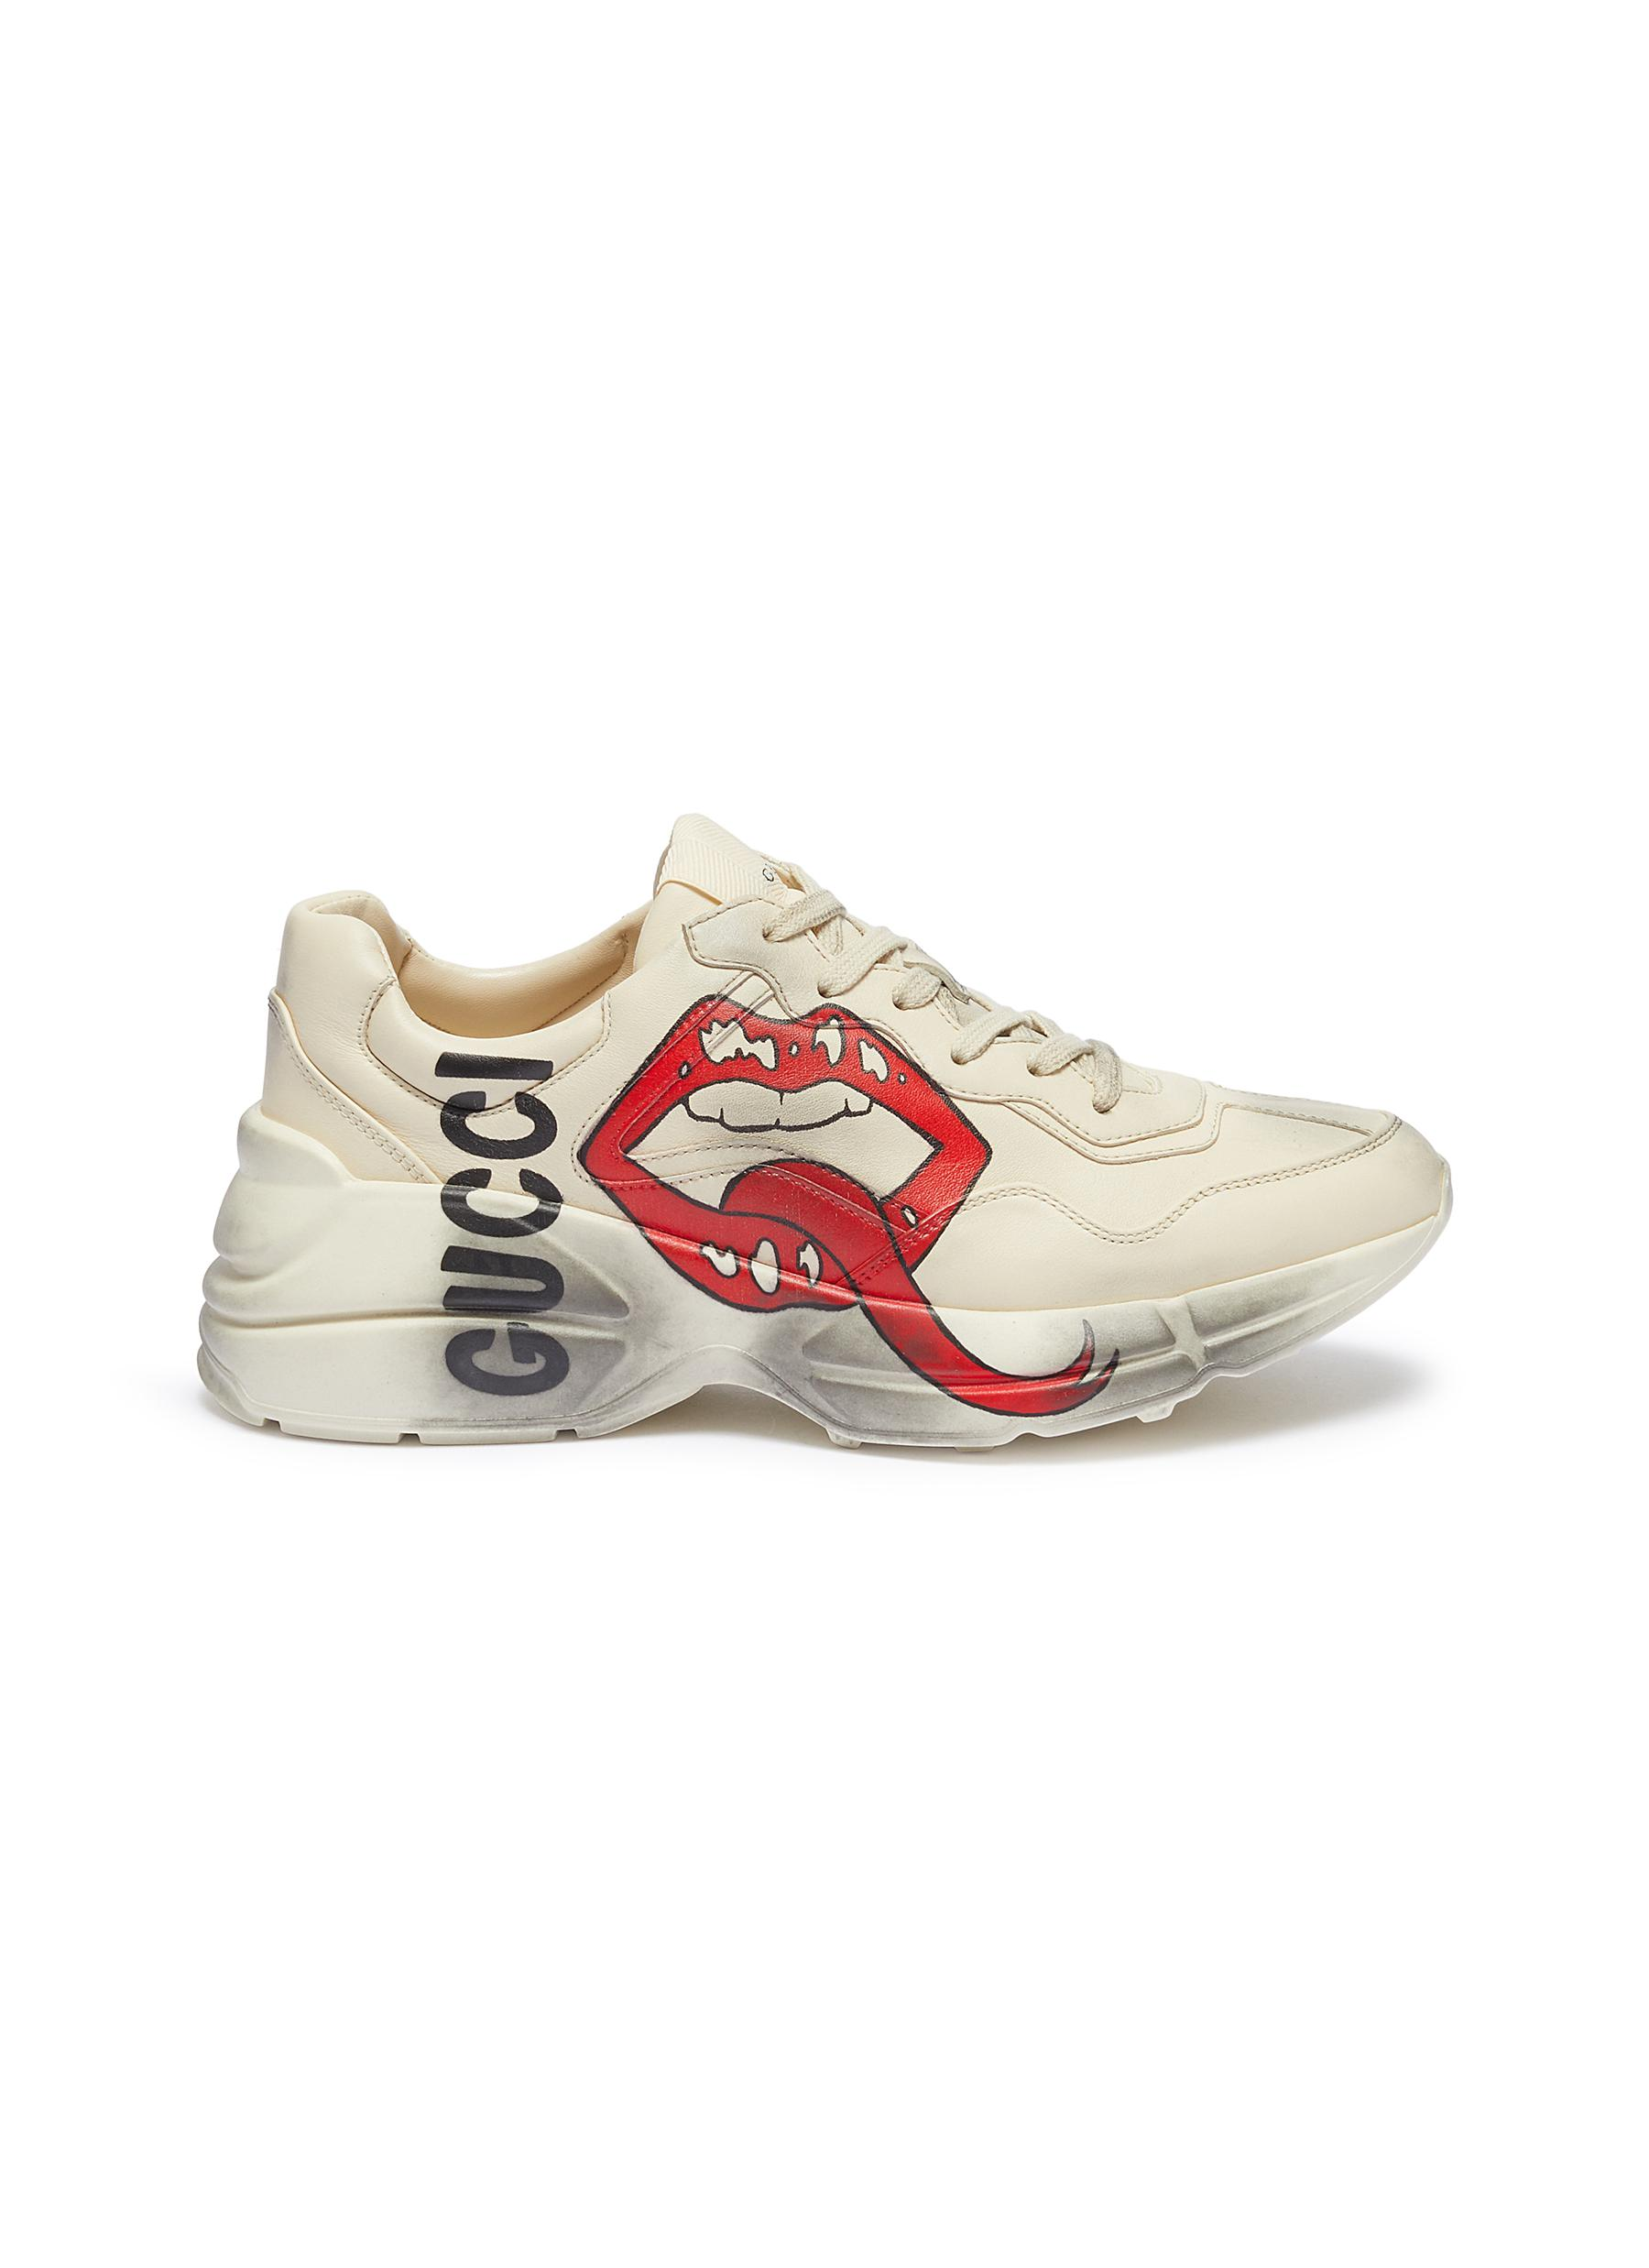 8c34f7907 Main View - Click To Enlarge - GUCCI - 'Rhyton' logo mouth print distressed